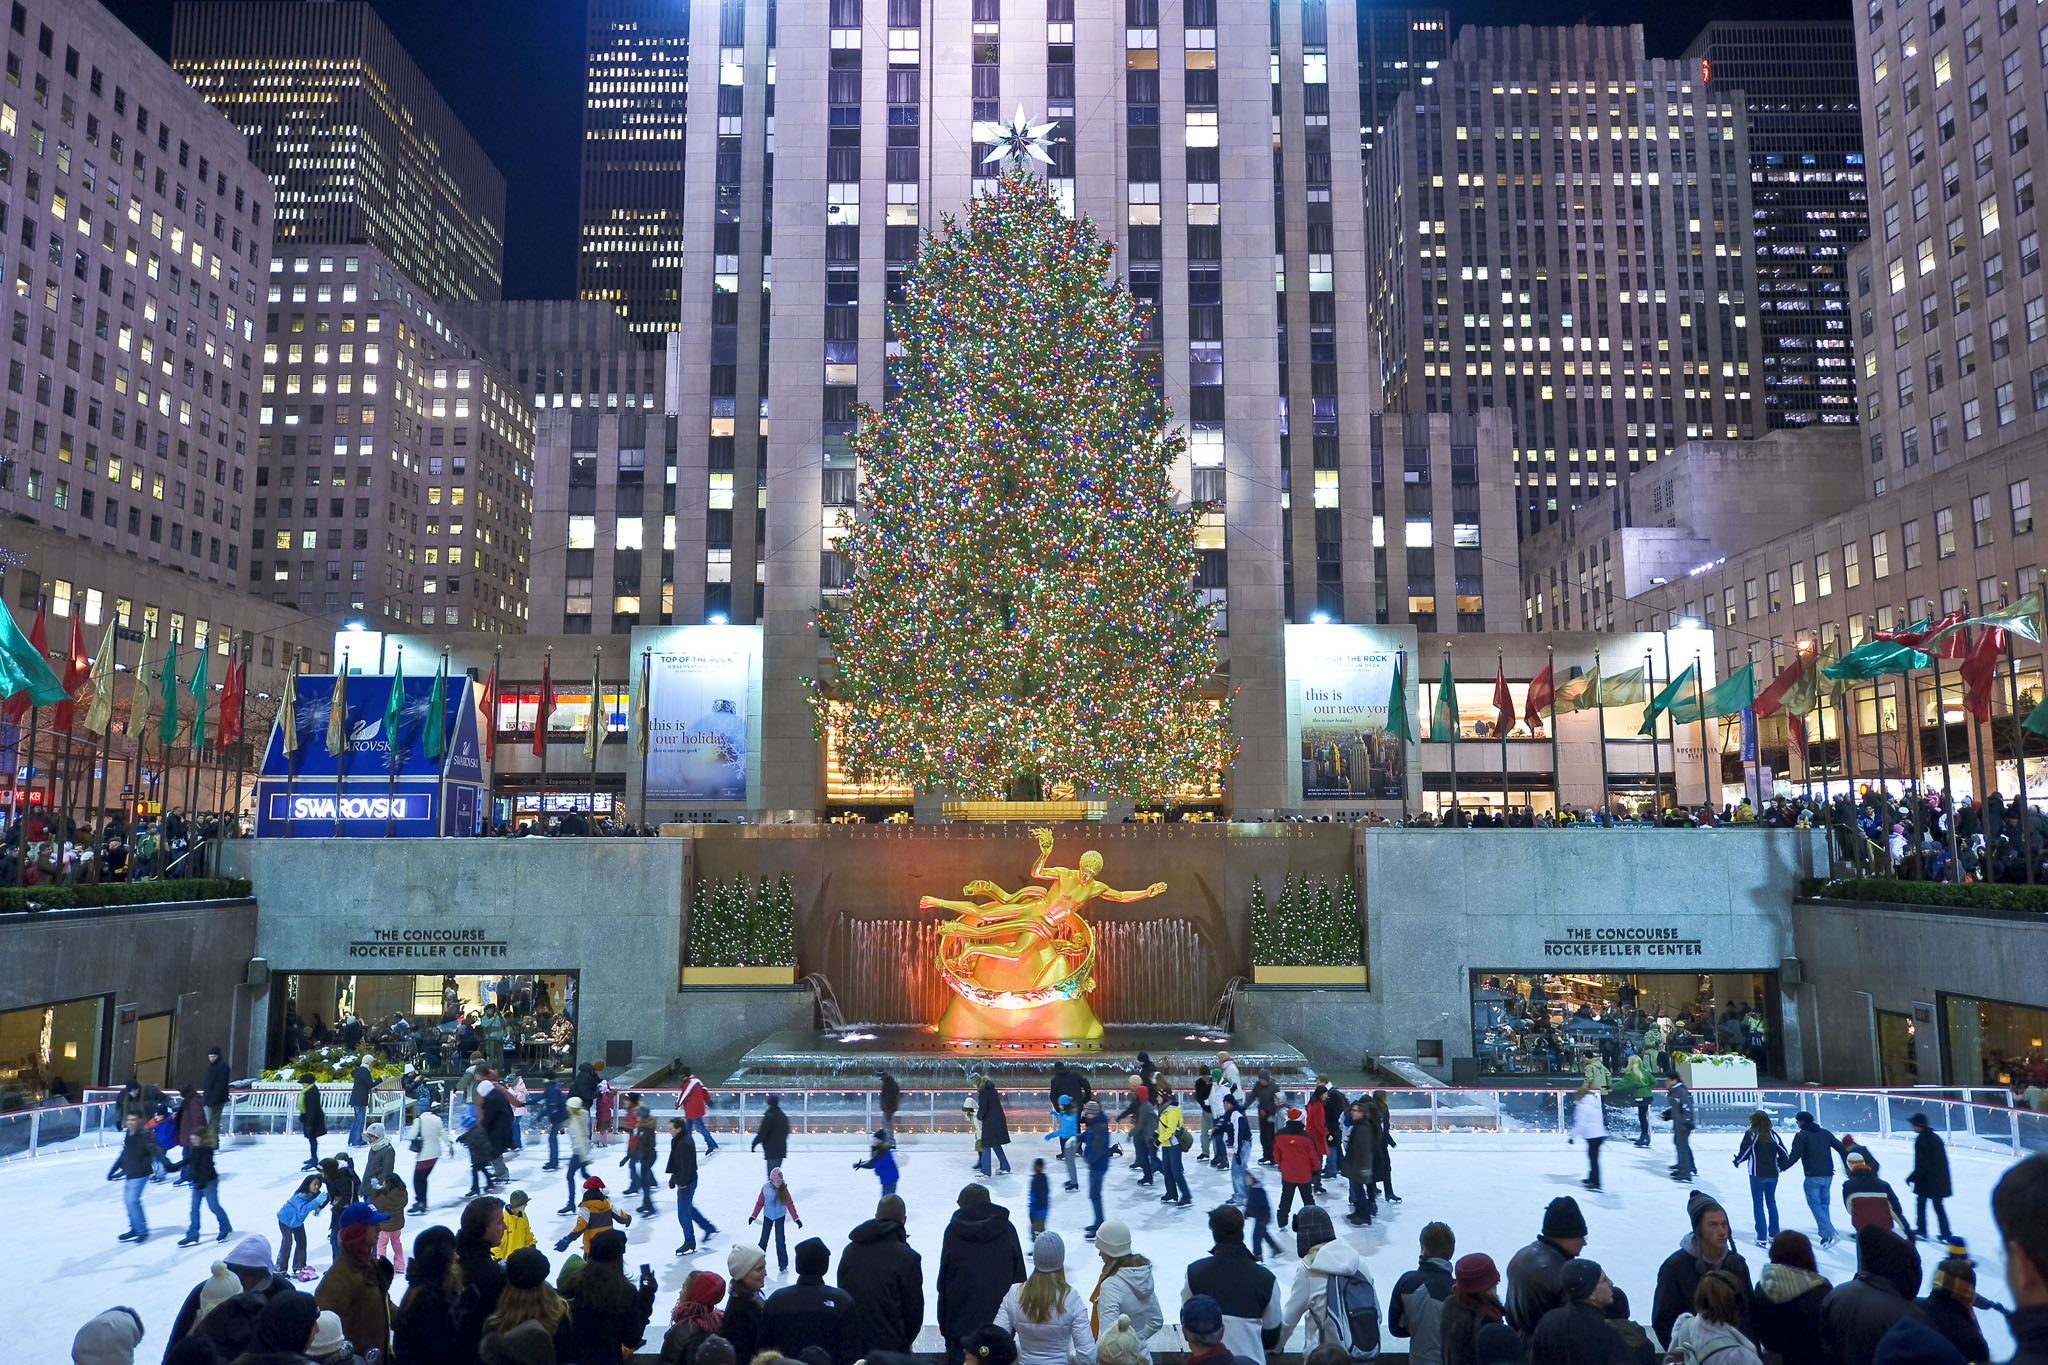 Western Winter Wonderland - Why You Should Check Out NYC In